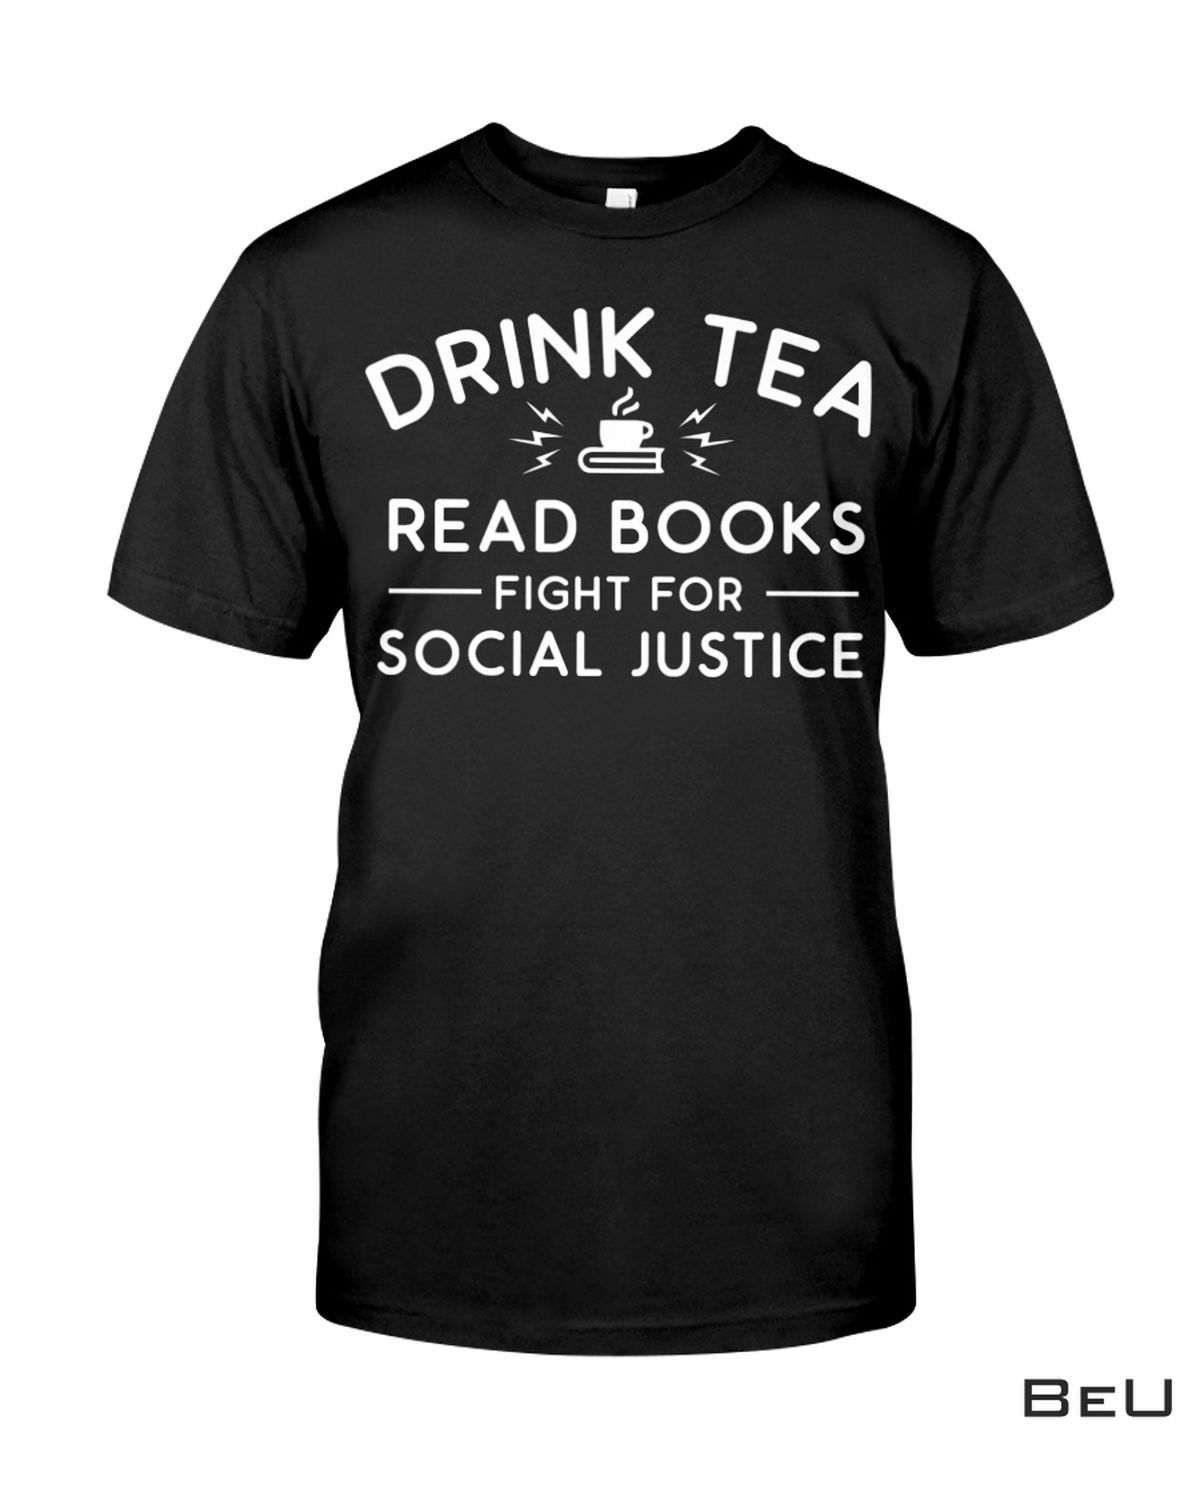 Drink Tea Read Books Fight For Social Justice Shirt, hoodie